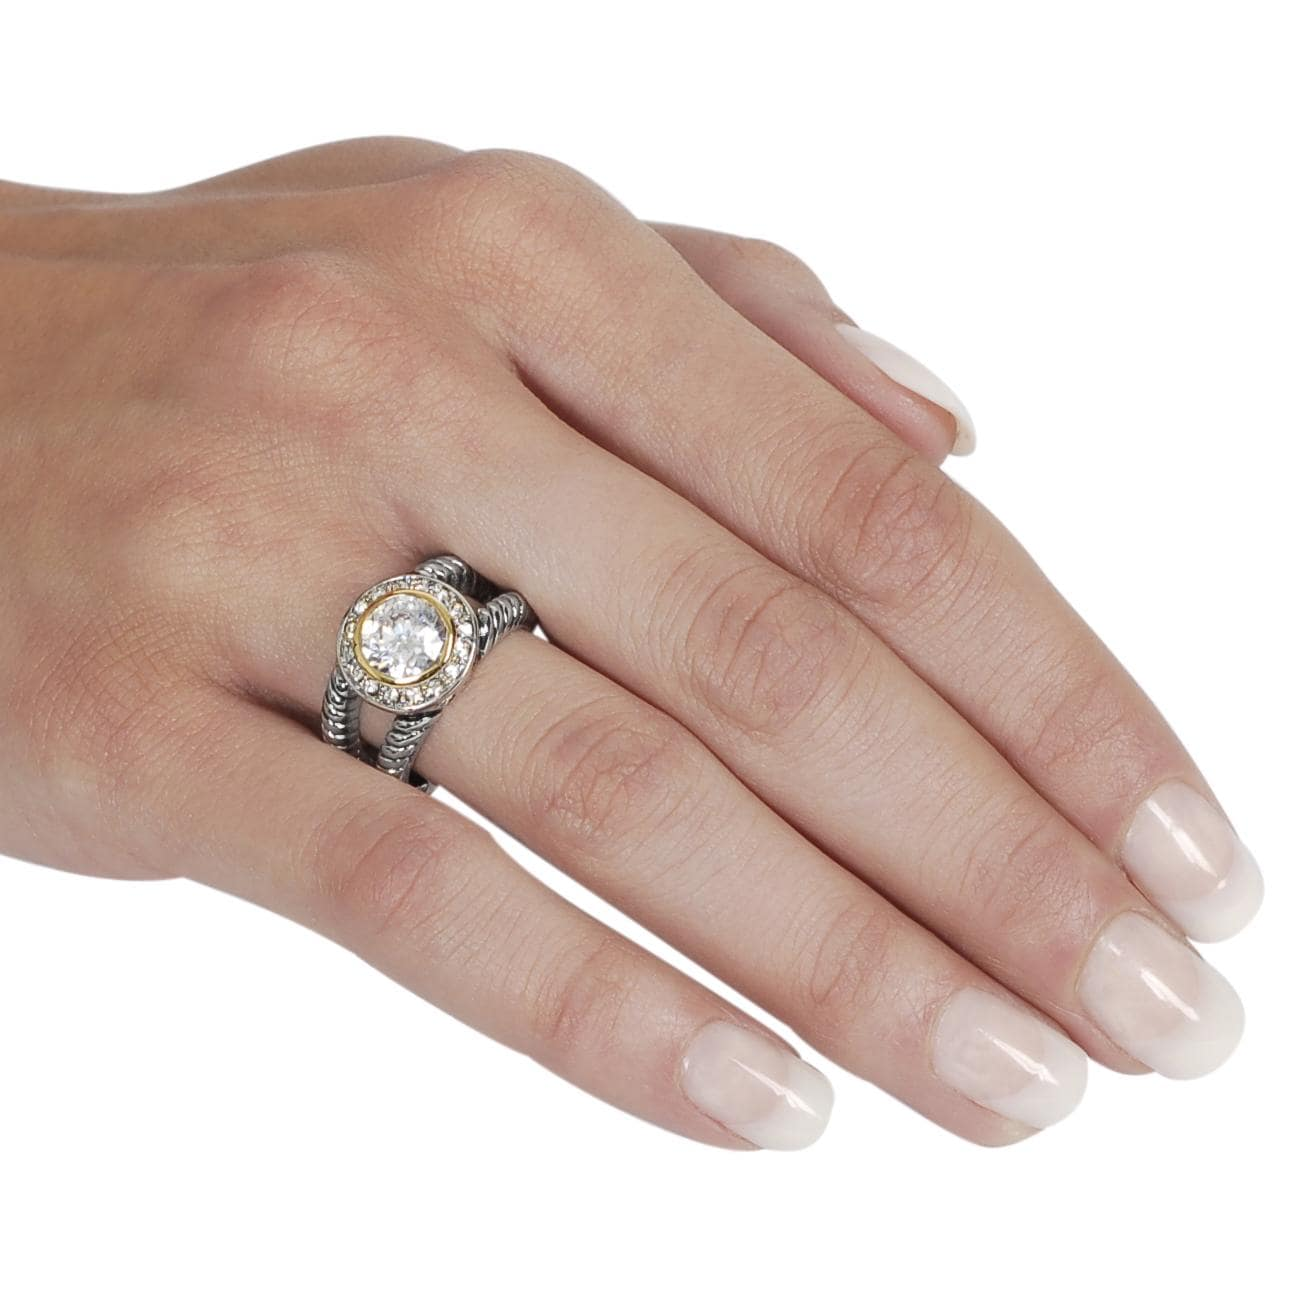 Silvertone and Goldtone Round-cut Cubic Zirconia Twist Ring